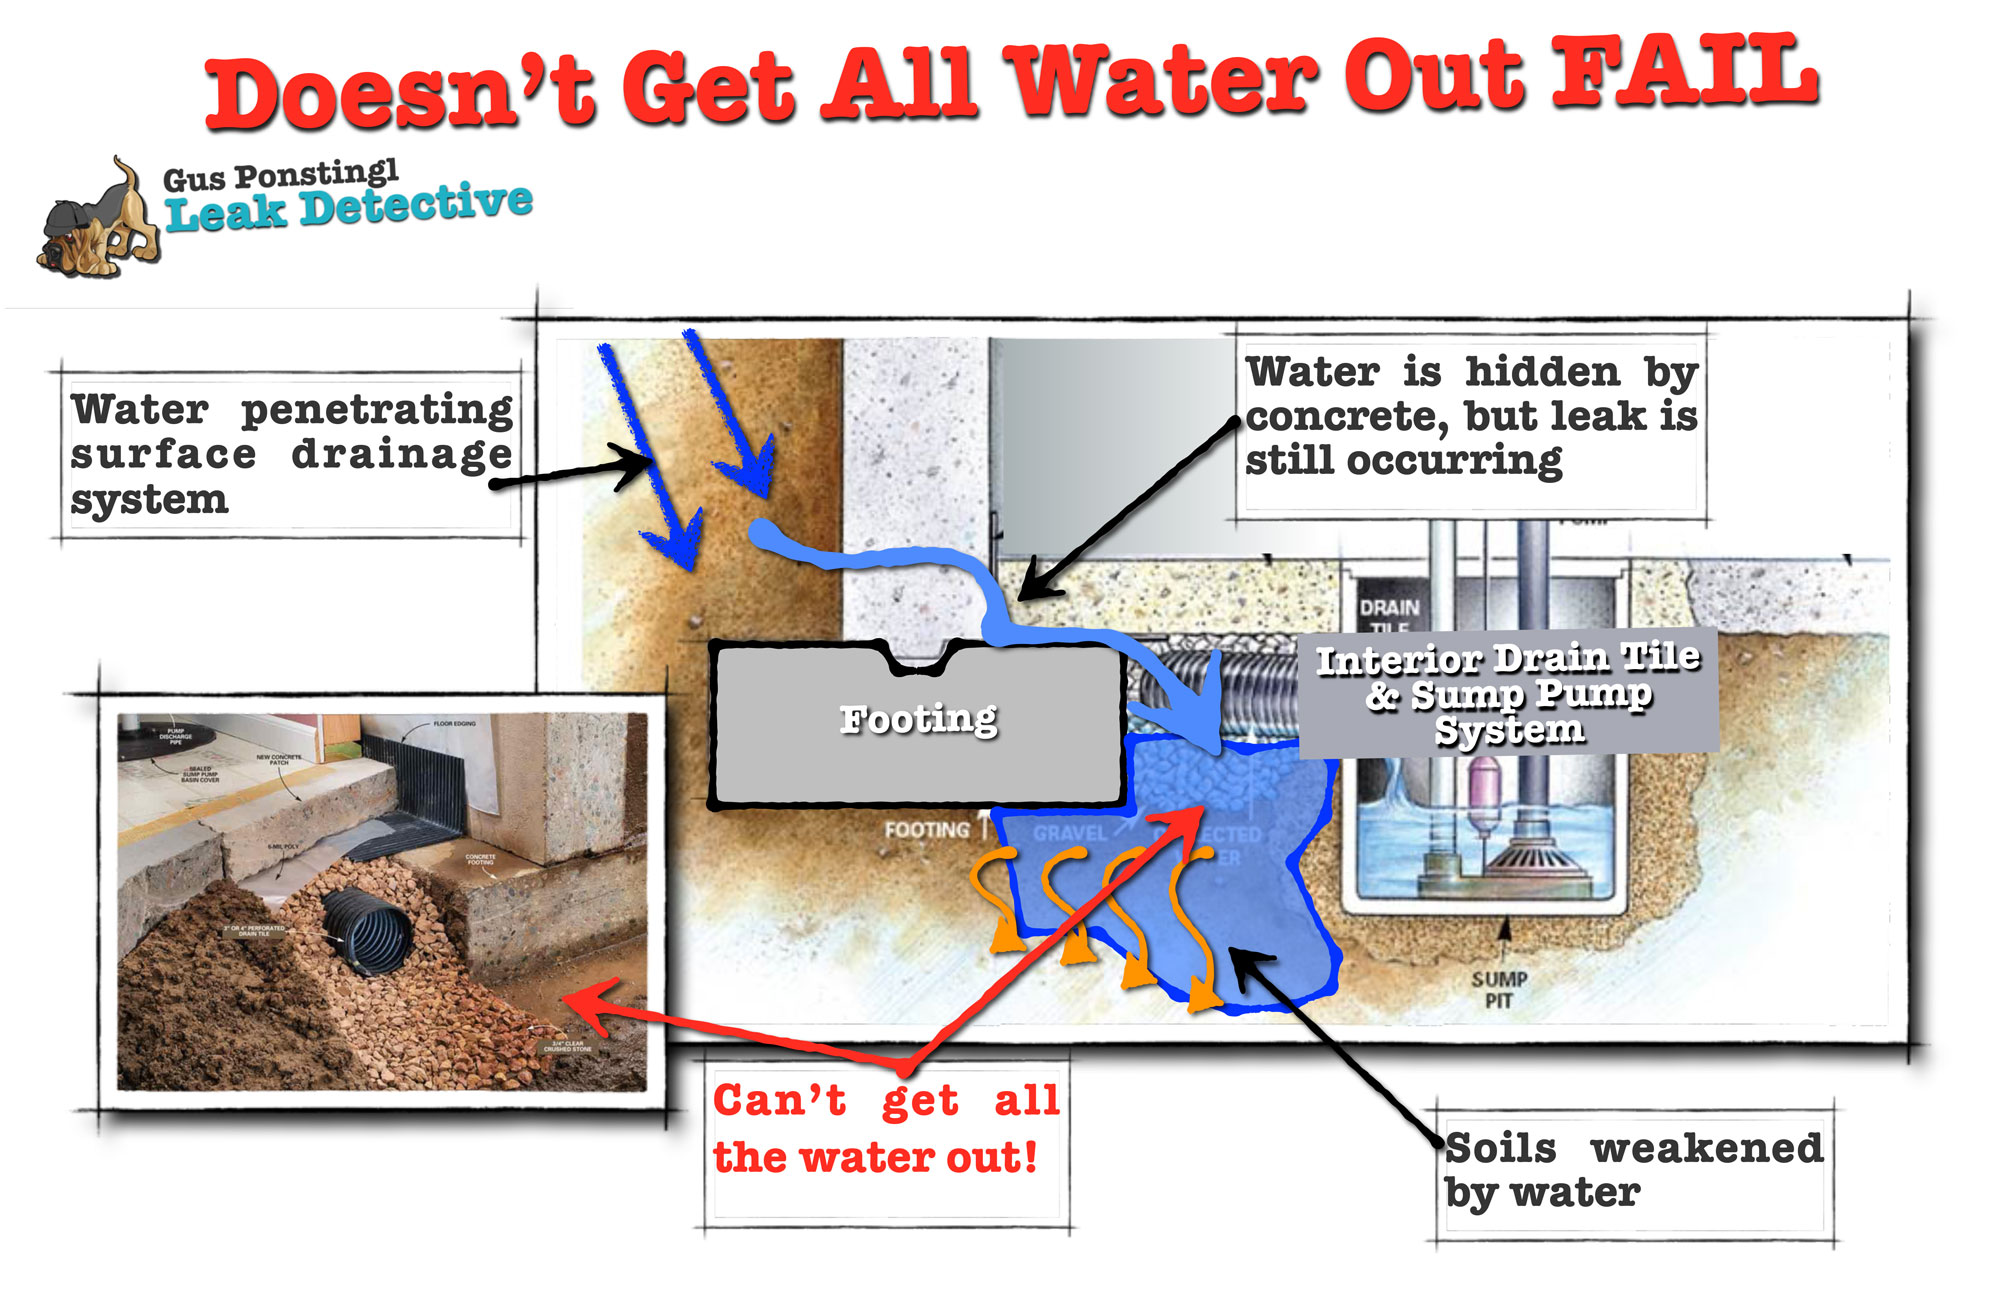 Sump pump doesn 39 t get all the water out fail leak detective for Surface drainage system